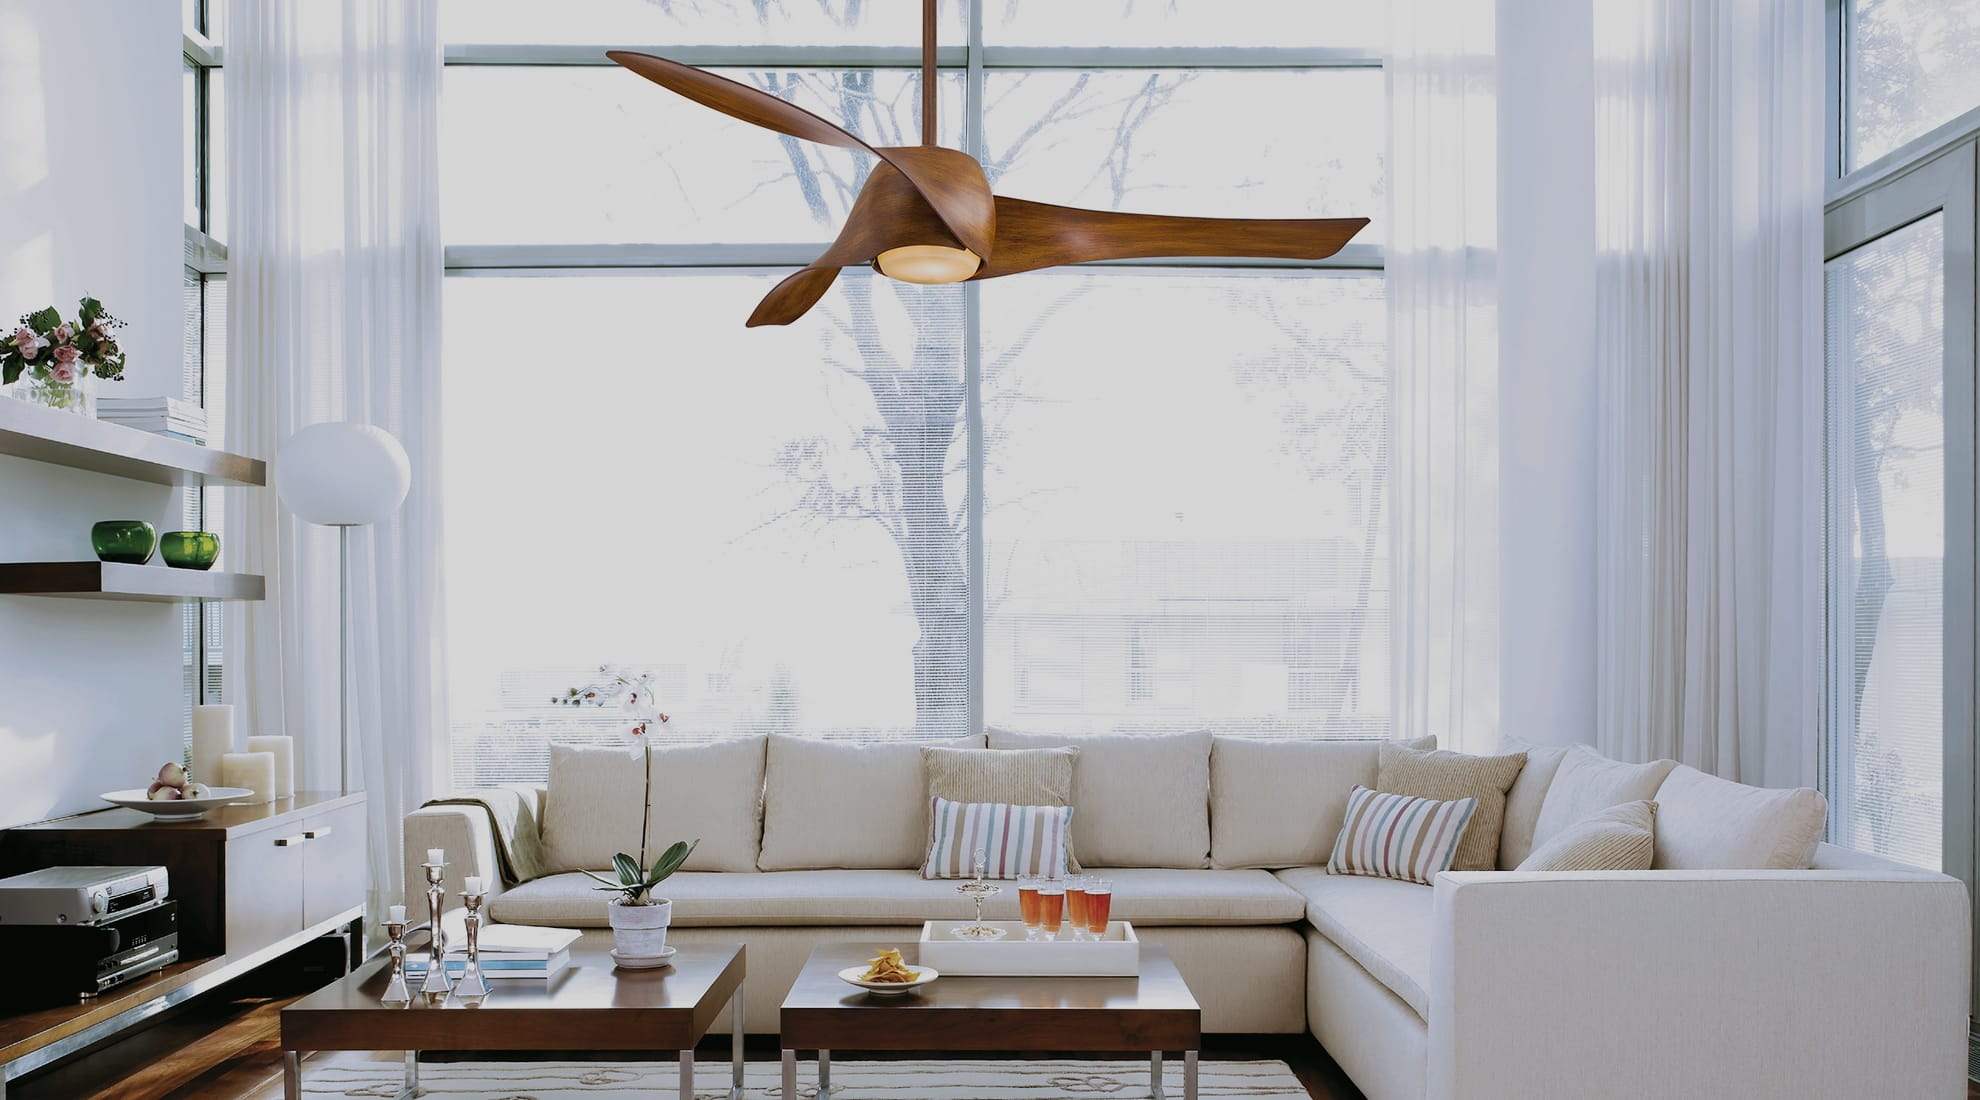 How To Choose a Ceiling Fan - Styles, Sizes + Installation ...